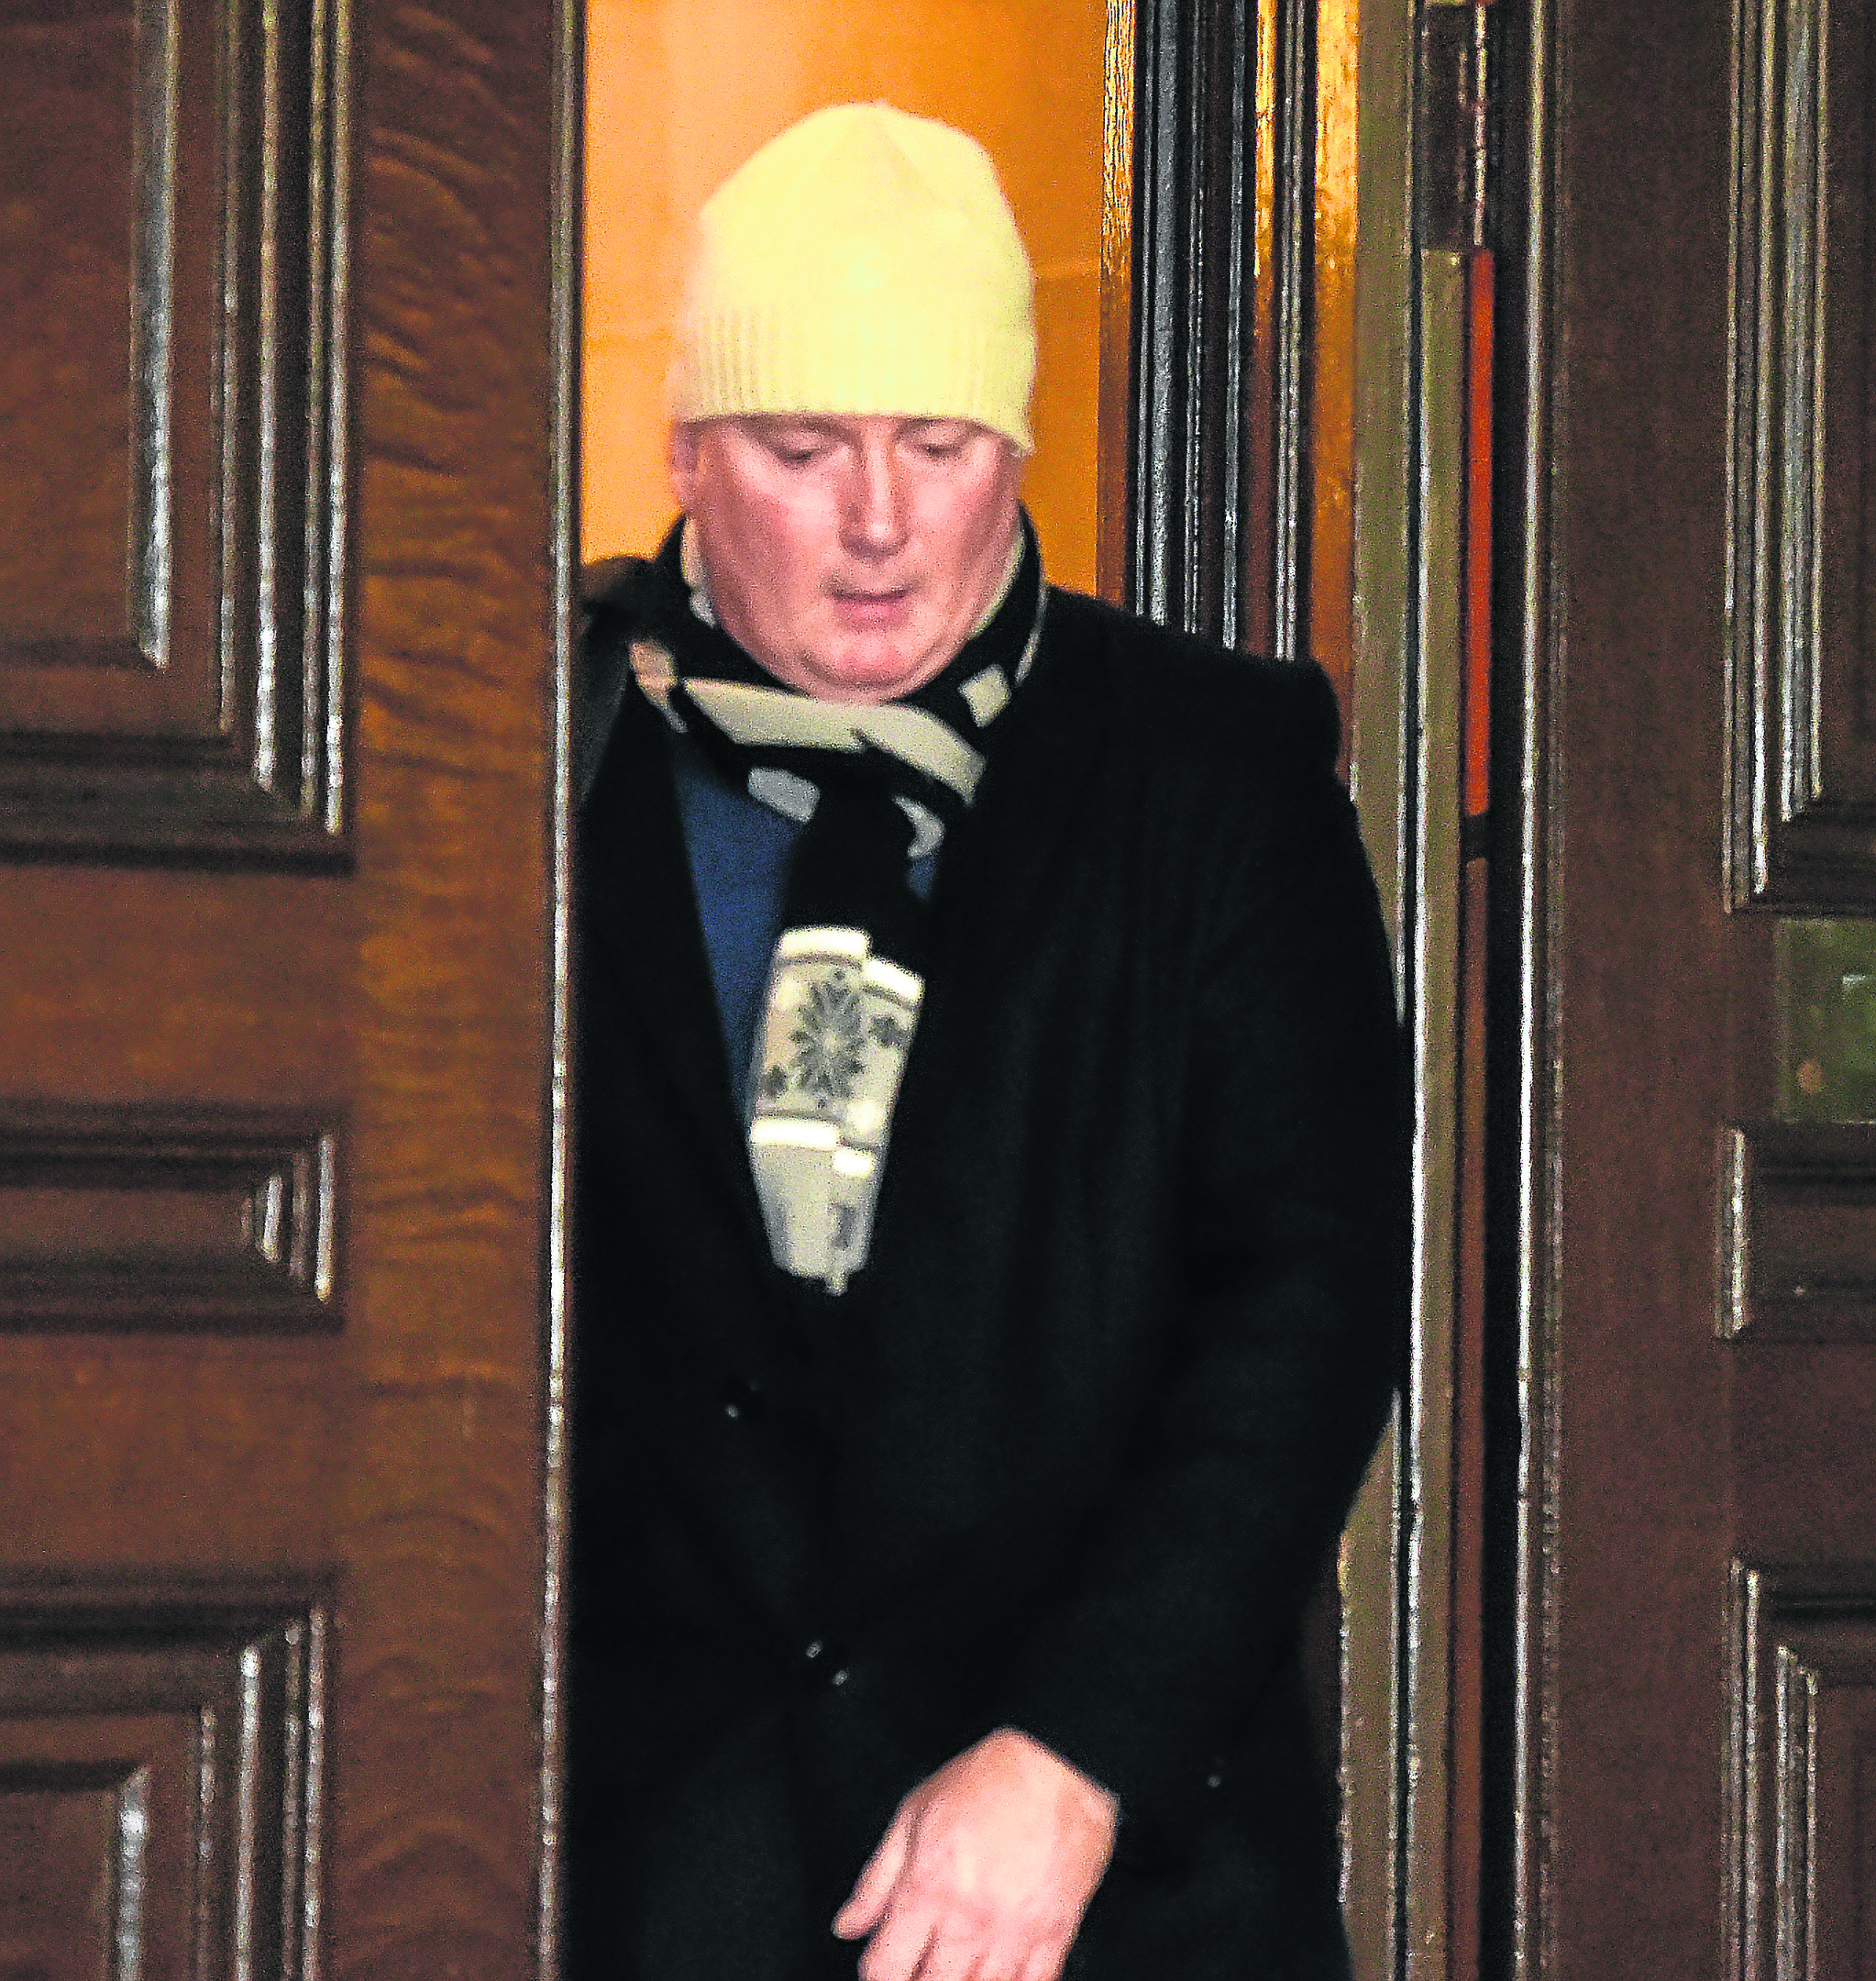 Oil worker faces claim he stalked his former boss